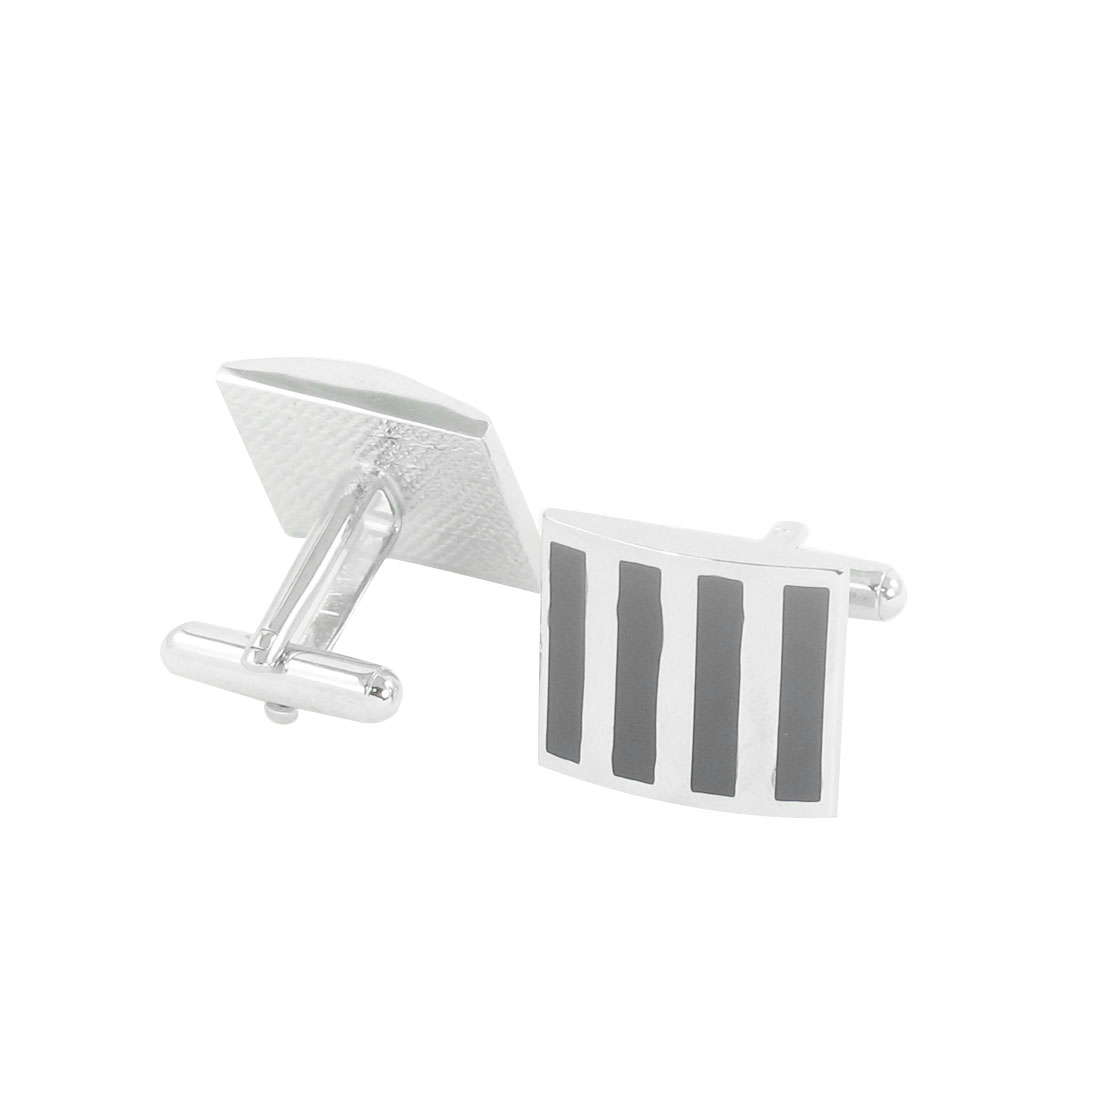 Wedding Party Black Stripes Pattern Metallic Cufflinks Cuff Links Pair